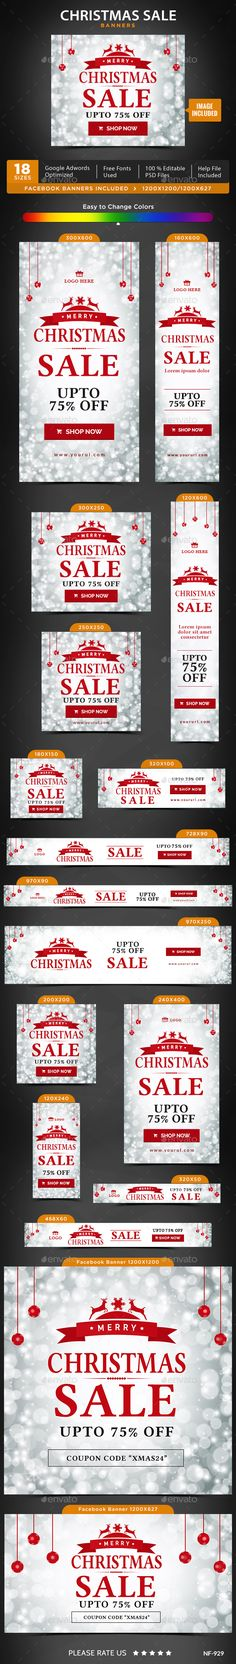 Christmas Sale Web Banners Template PSD #design #promote Download: http://graphicriver.net/item/christmas-sale-banners/14080432?ref=ksioks